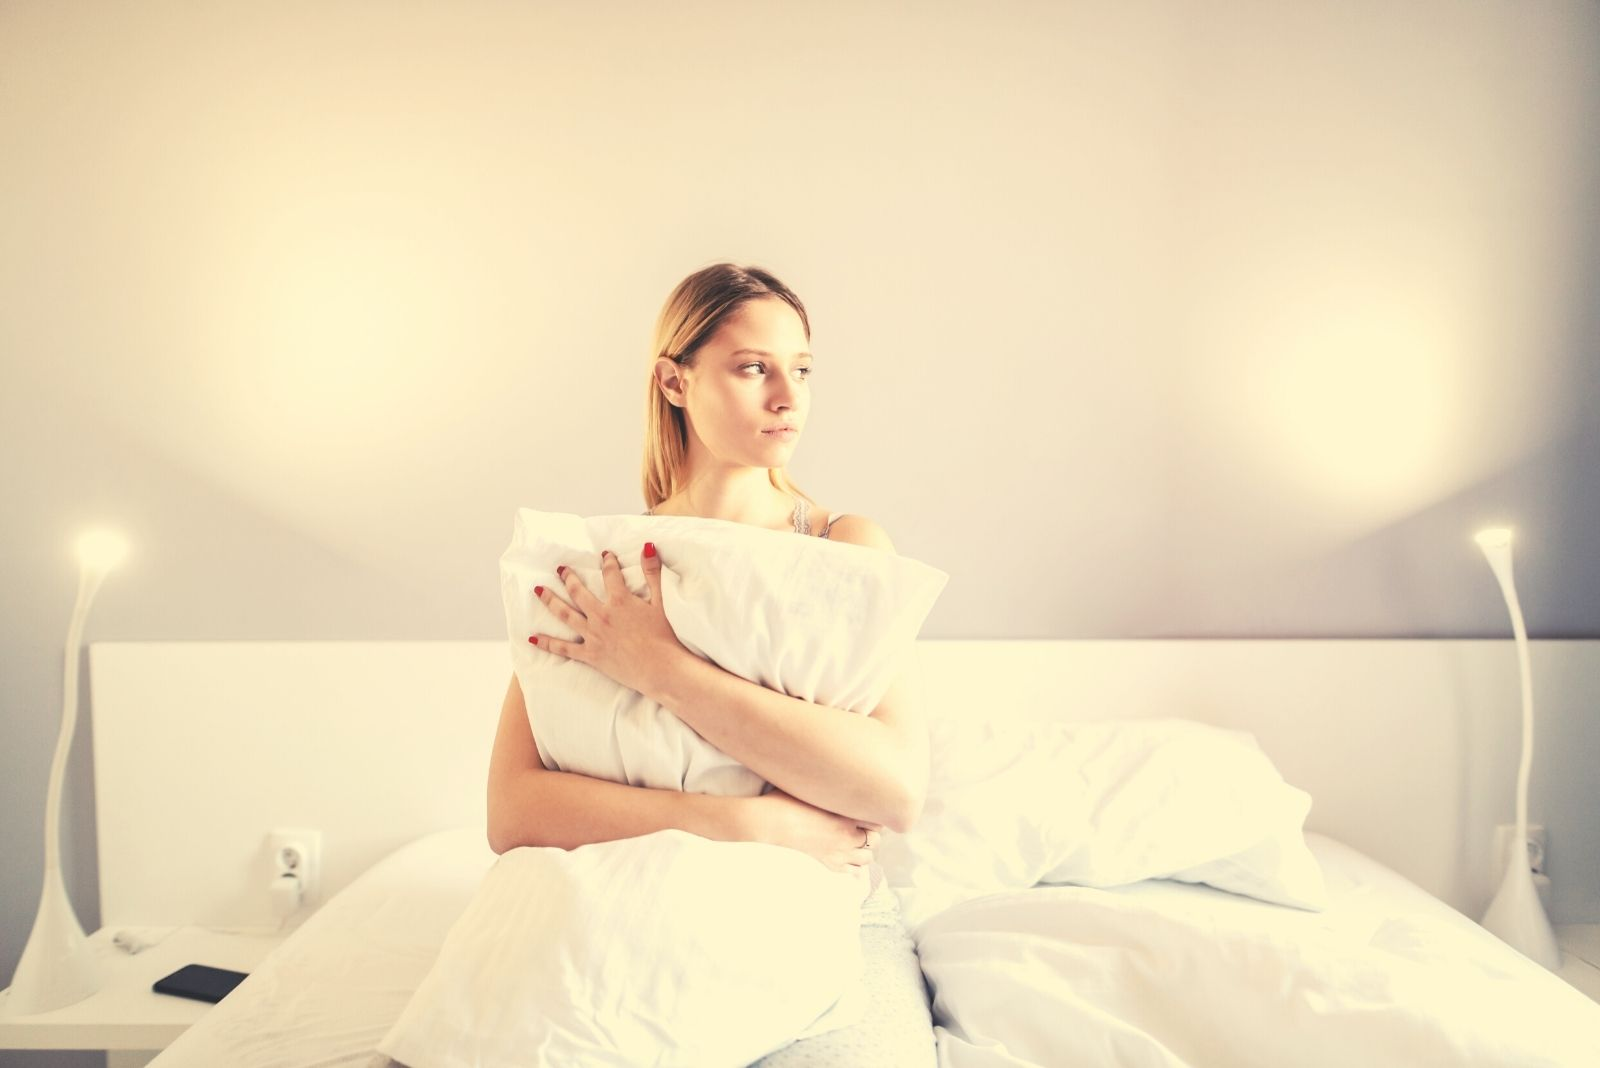 portrait of a sad woman embracing pillow while sitting in the bed